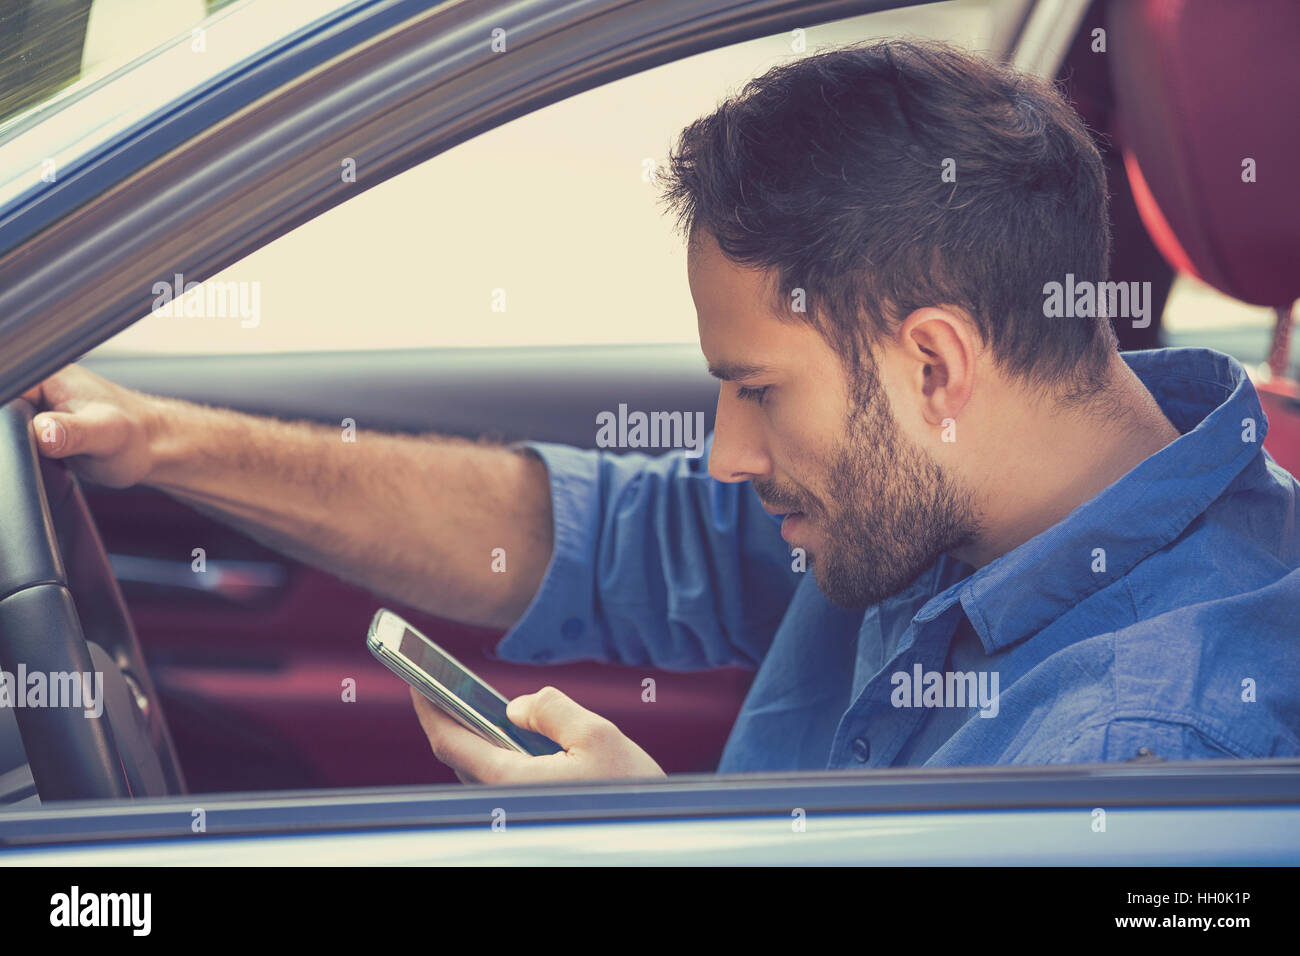 Portrait of handsome young business man using texting on mobile phone while driving a car Stock Photo